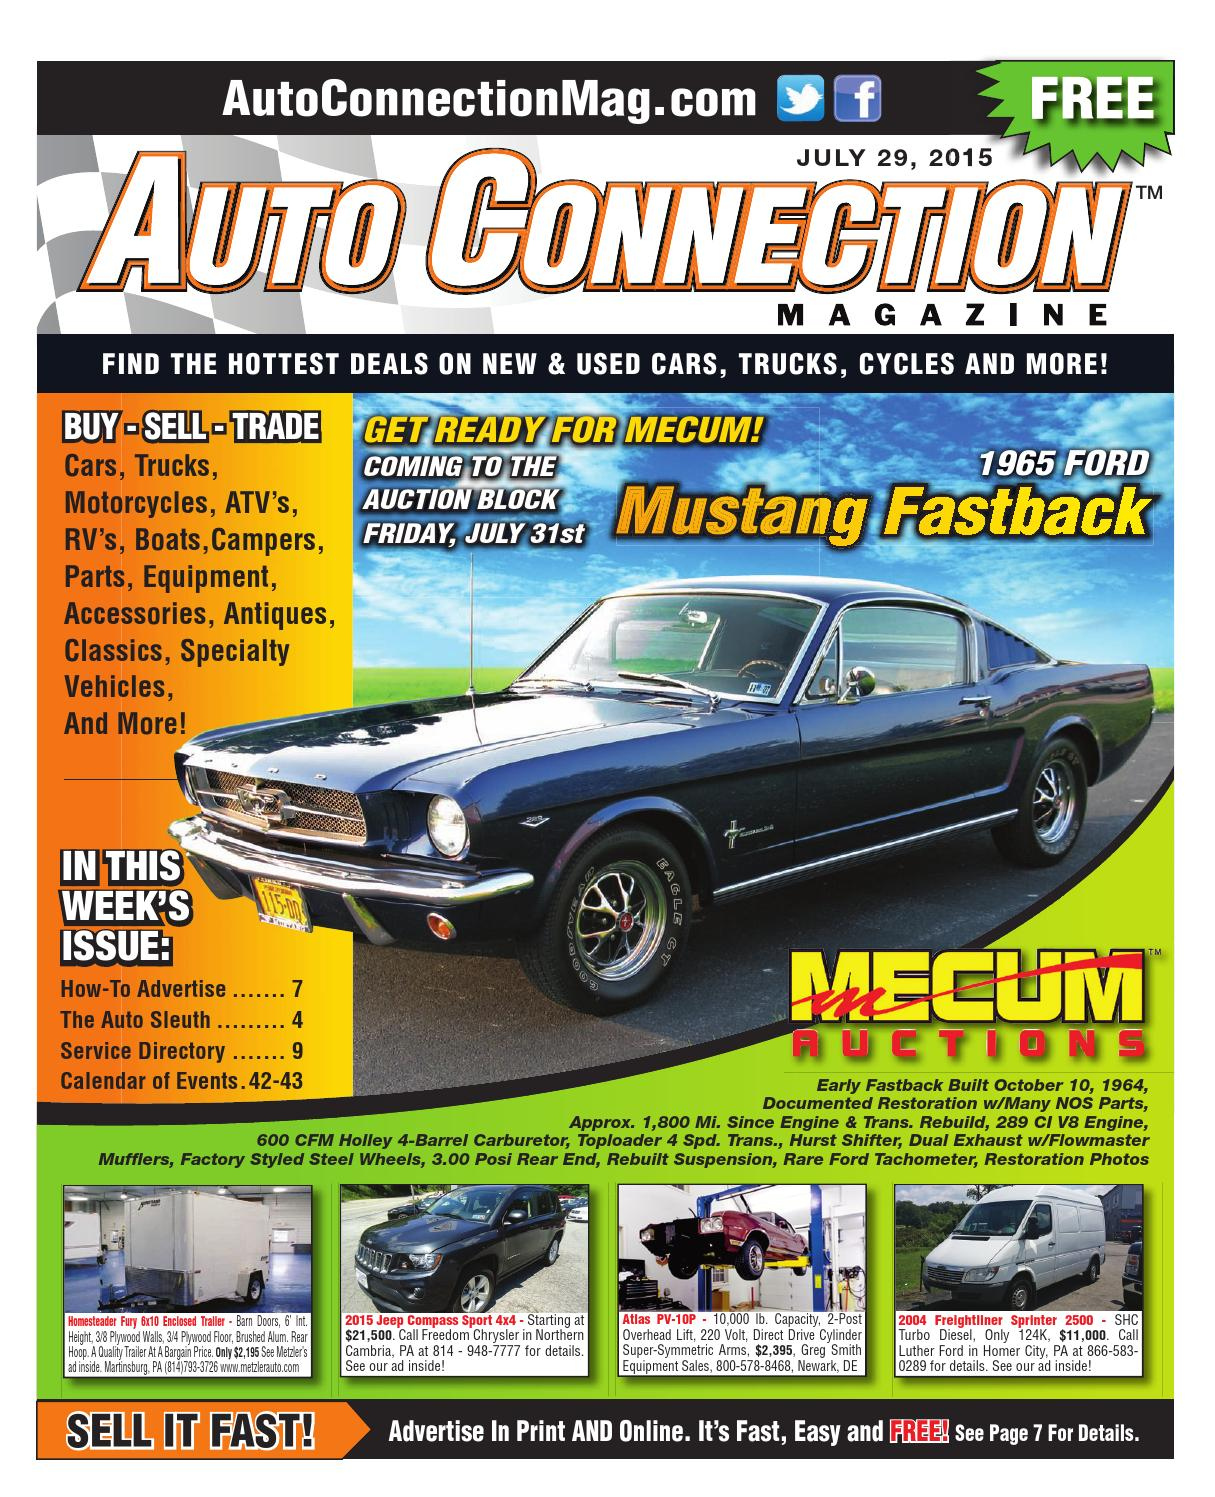 07 29 15 Auto Connection Magazine By Issuu 1968 1969 70 71 72 Buick Skylark Gs Gsx Electra Lesabre Wiring